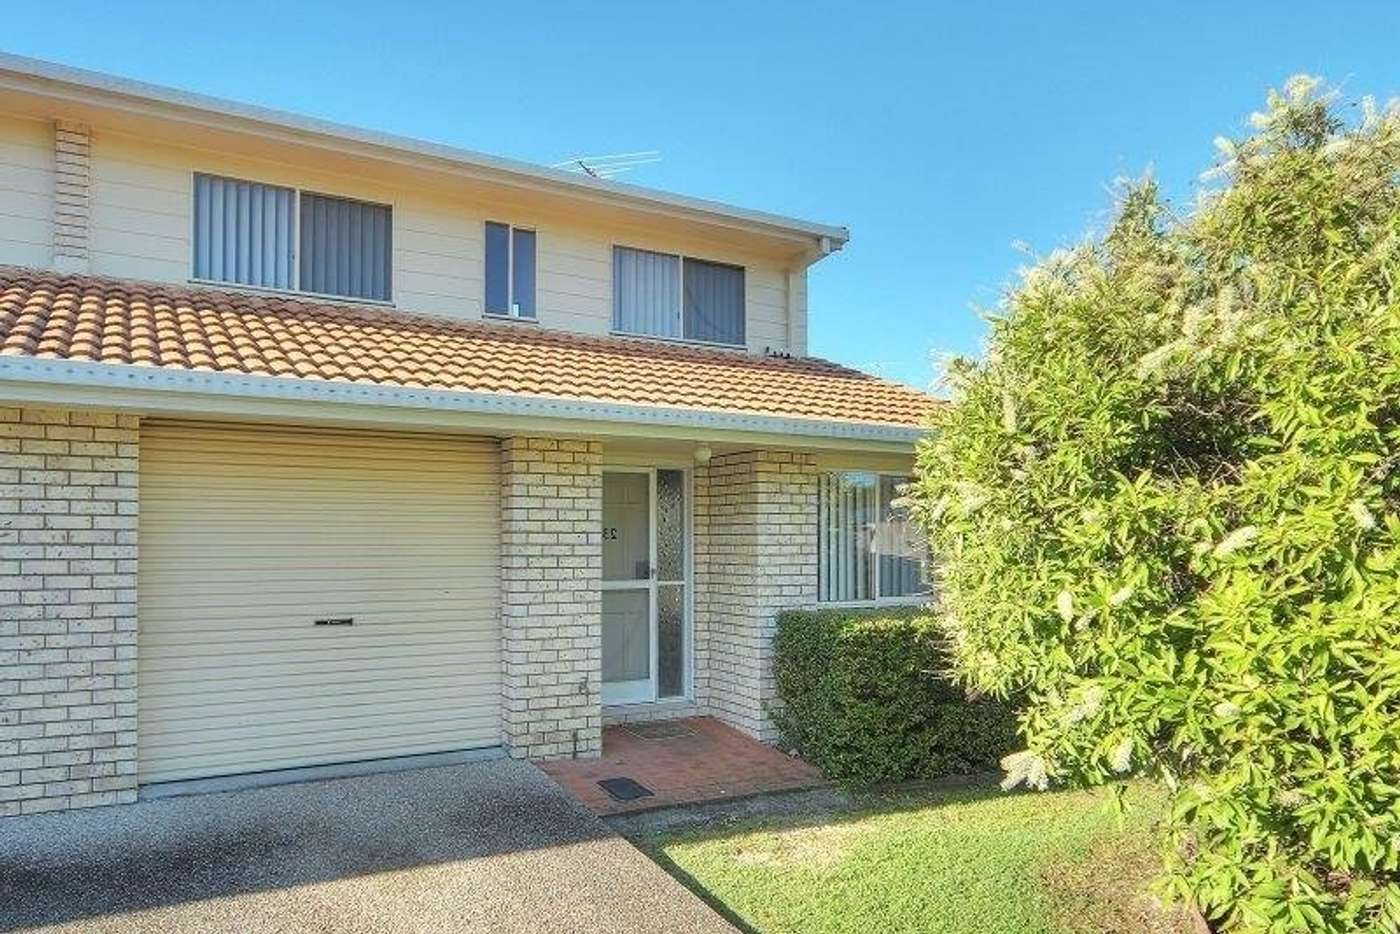 Main view of Homely house listing, 24/76 Condamine Street, Runcorn QLD 4113